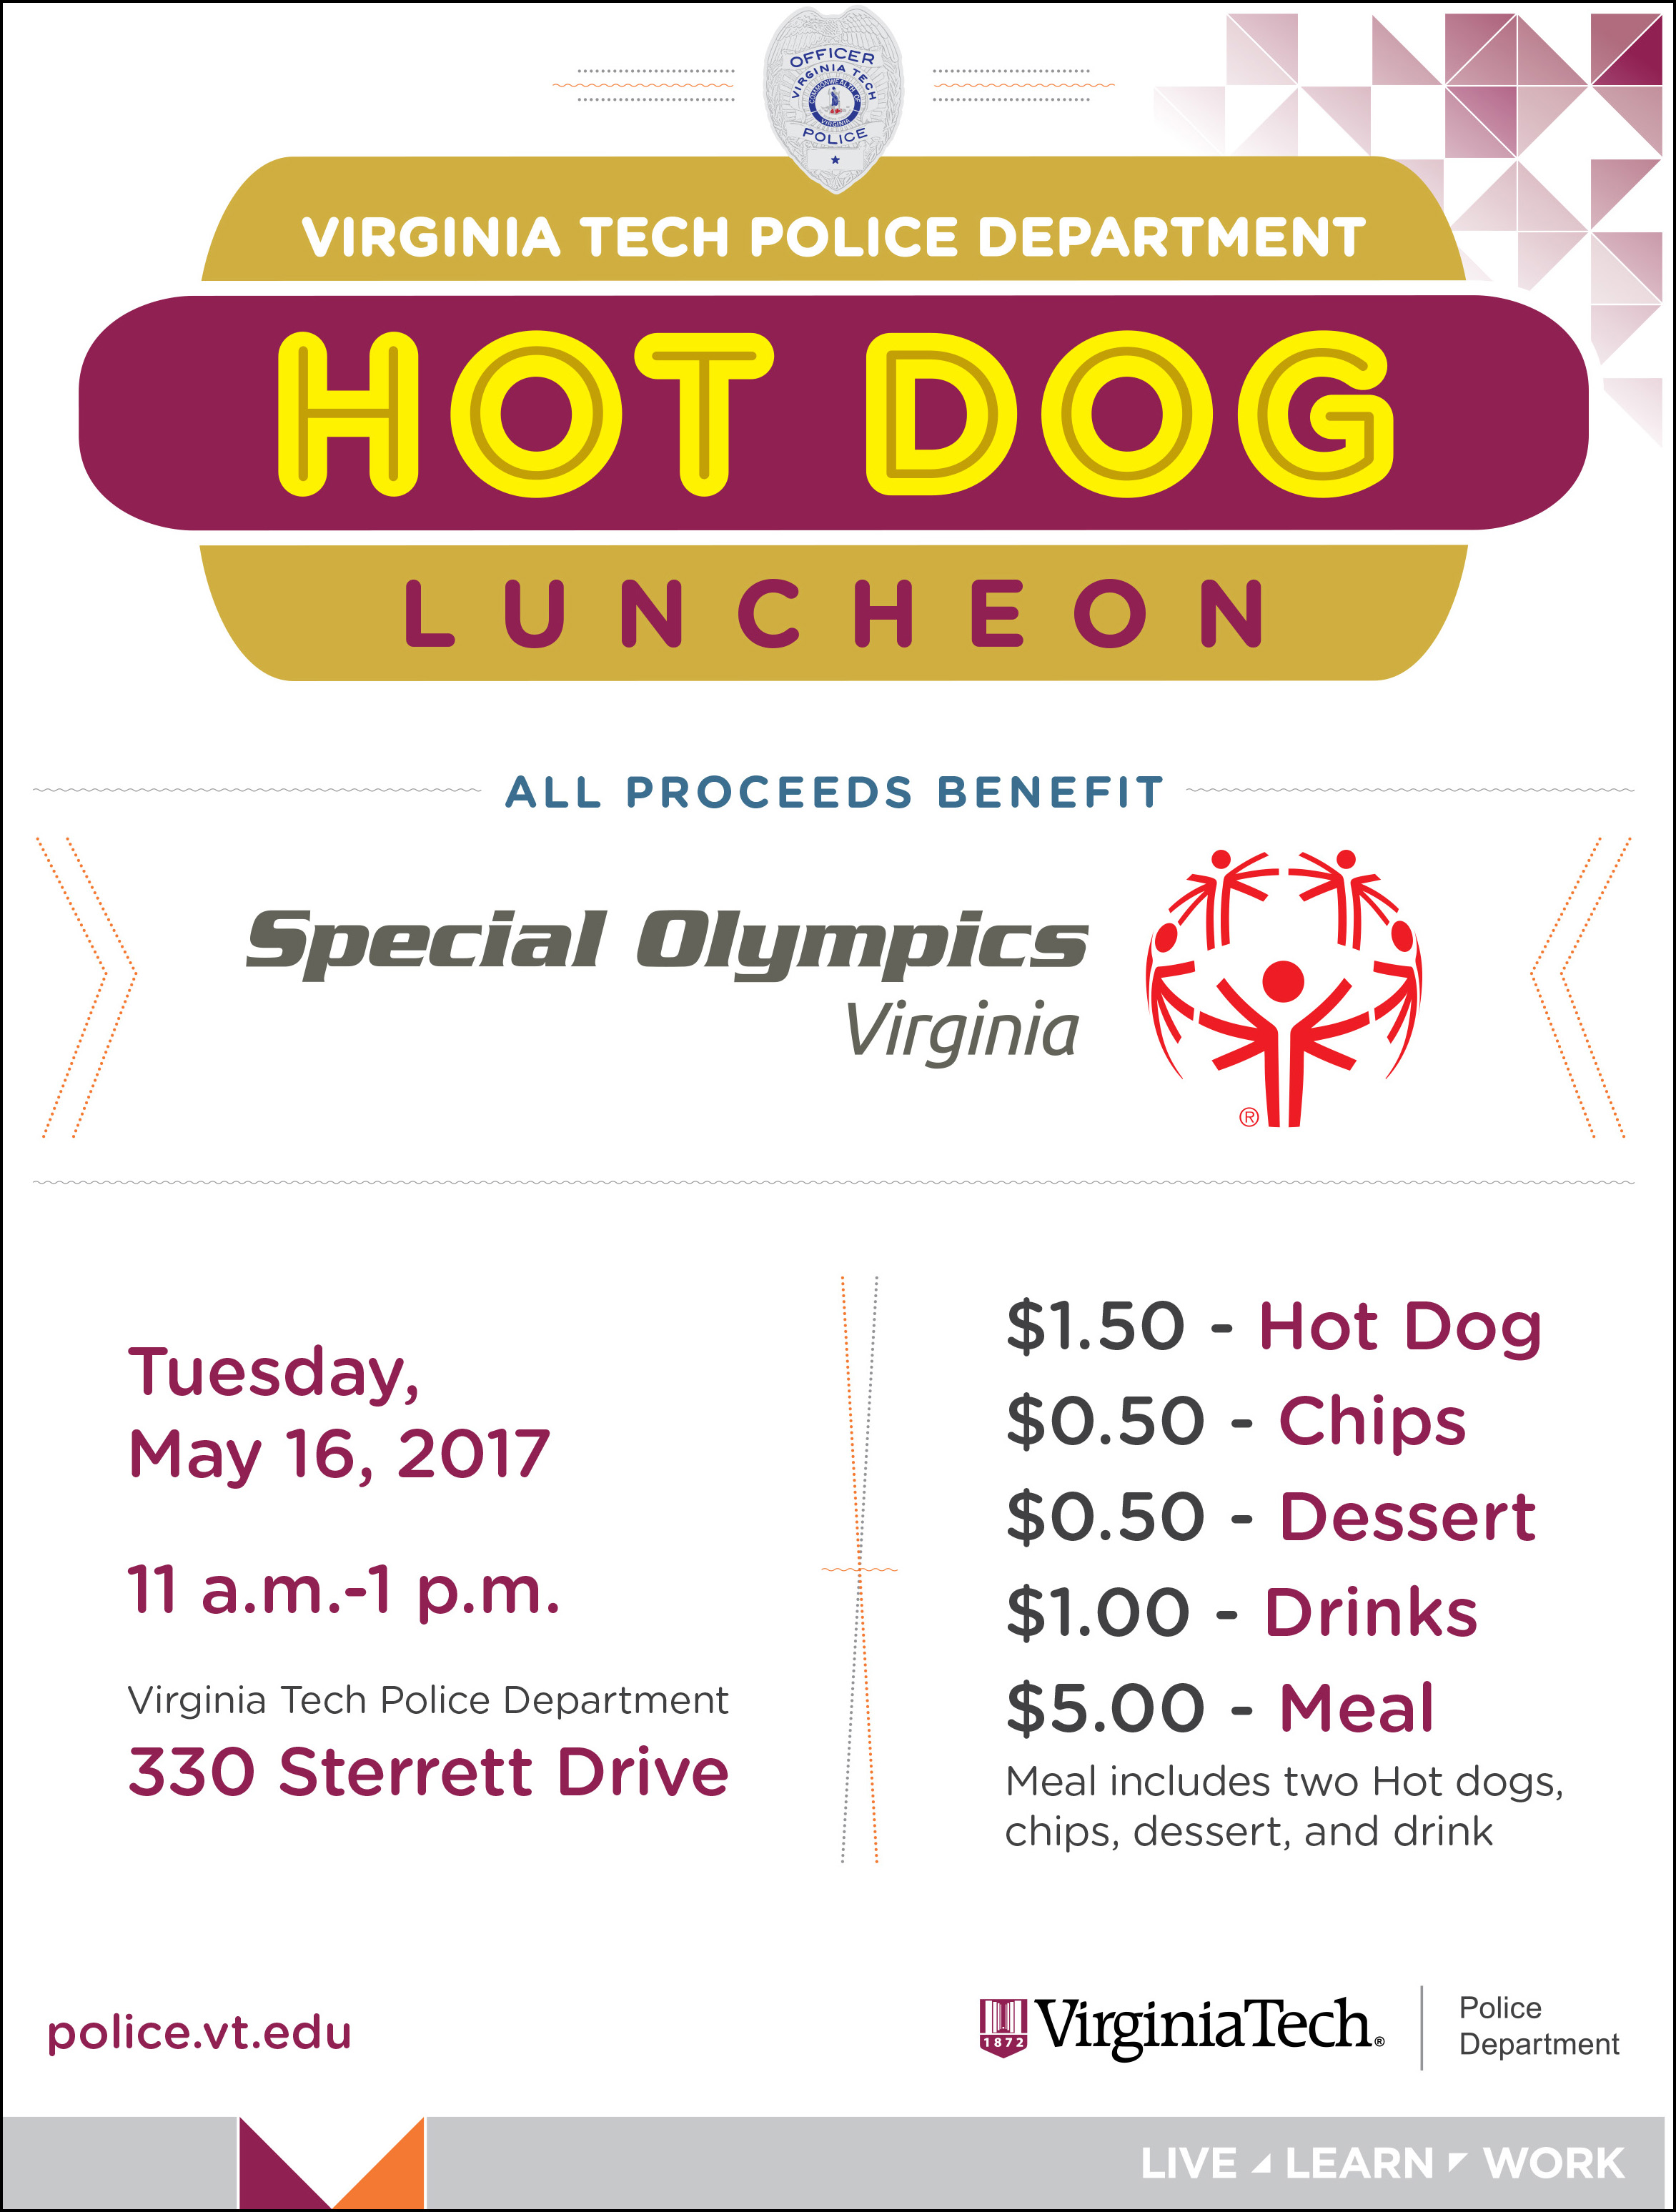 Hot dog luncheon